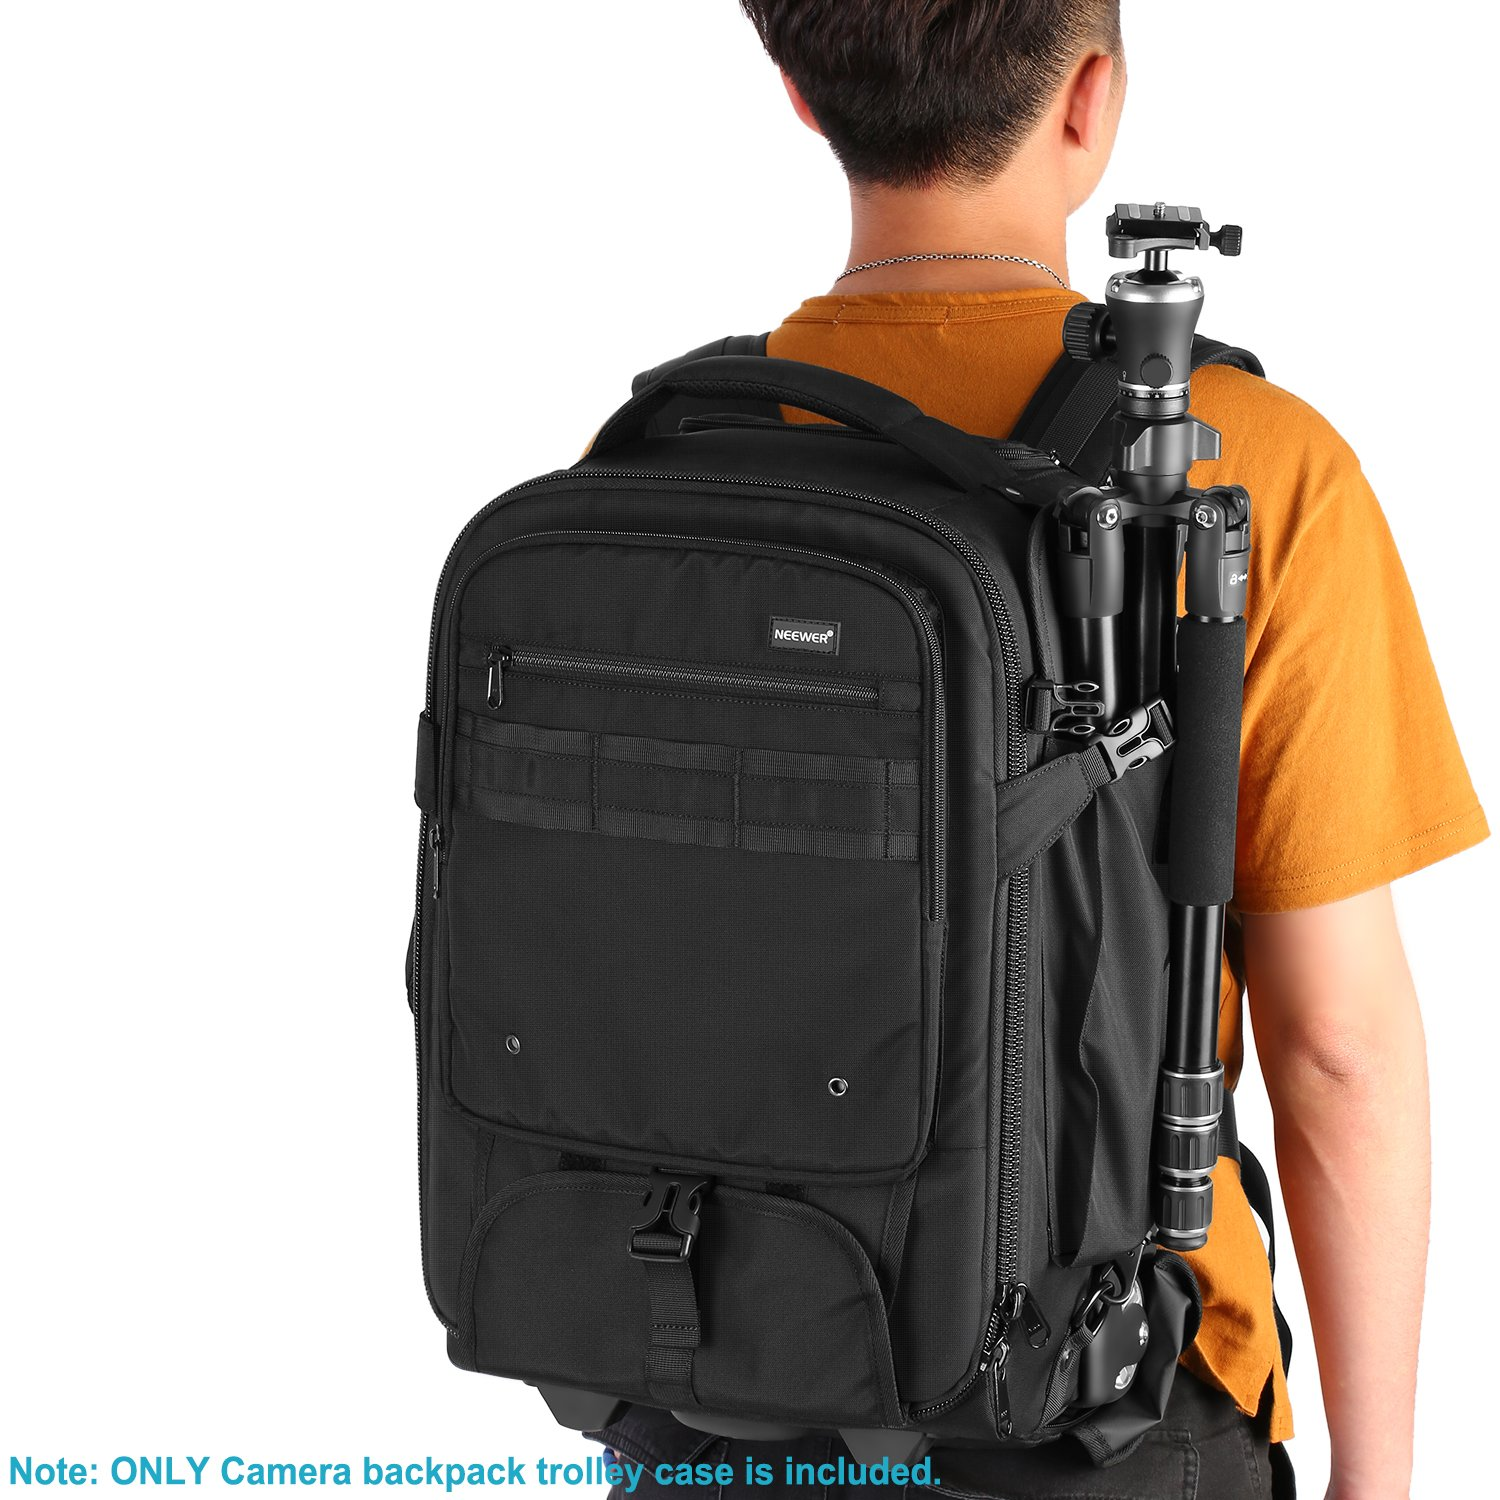 Hidden Pull Bar Durable Black Neewer 2-in-1 Rolling Camera Backpack Trolley Case with Side Handle- Anti-Shock Detachable Padded Compartment Waterproof for Camera,Tripod,Flash Light,Lens,Laptop